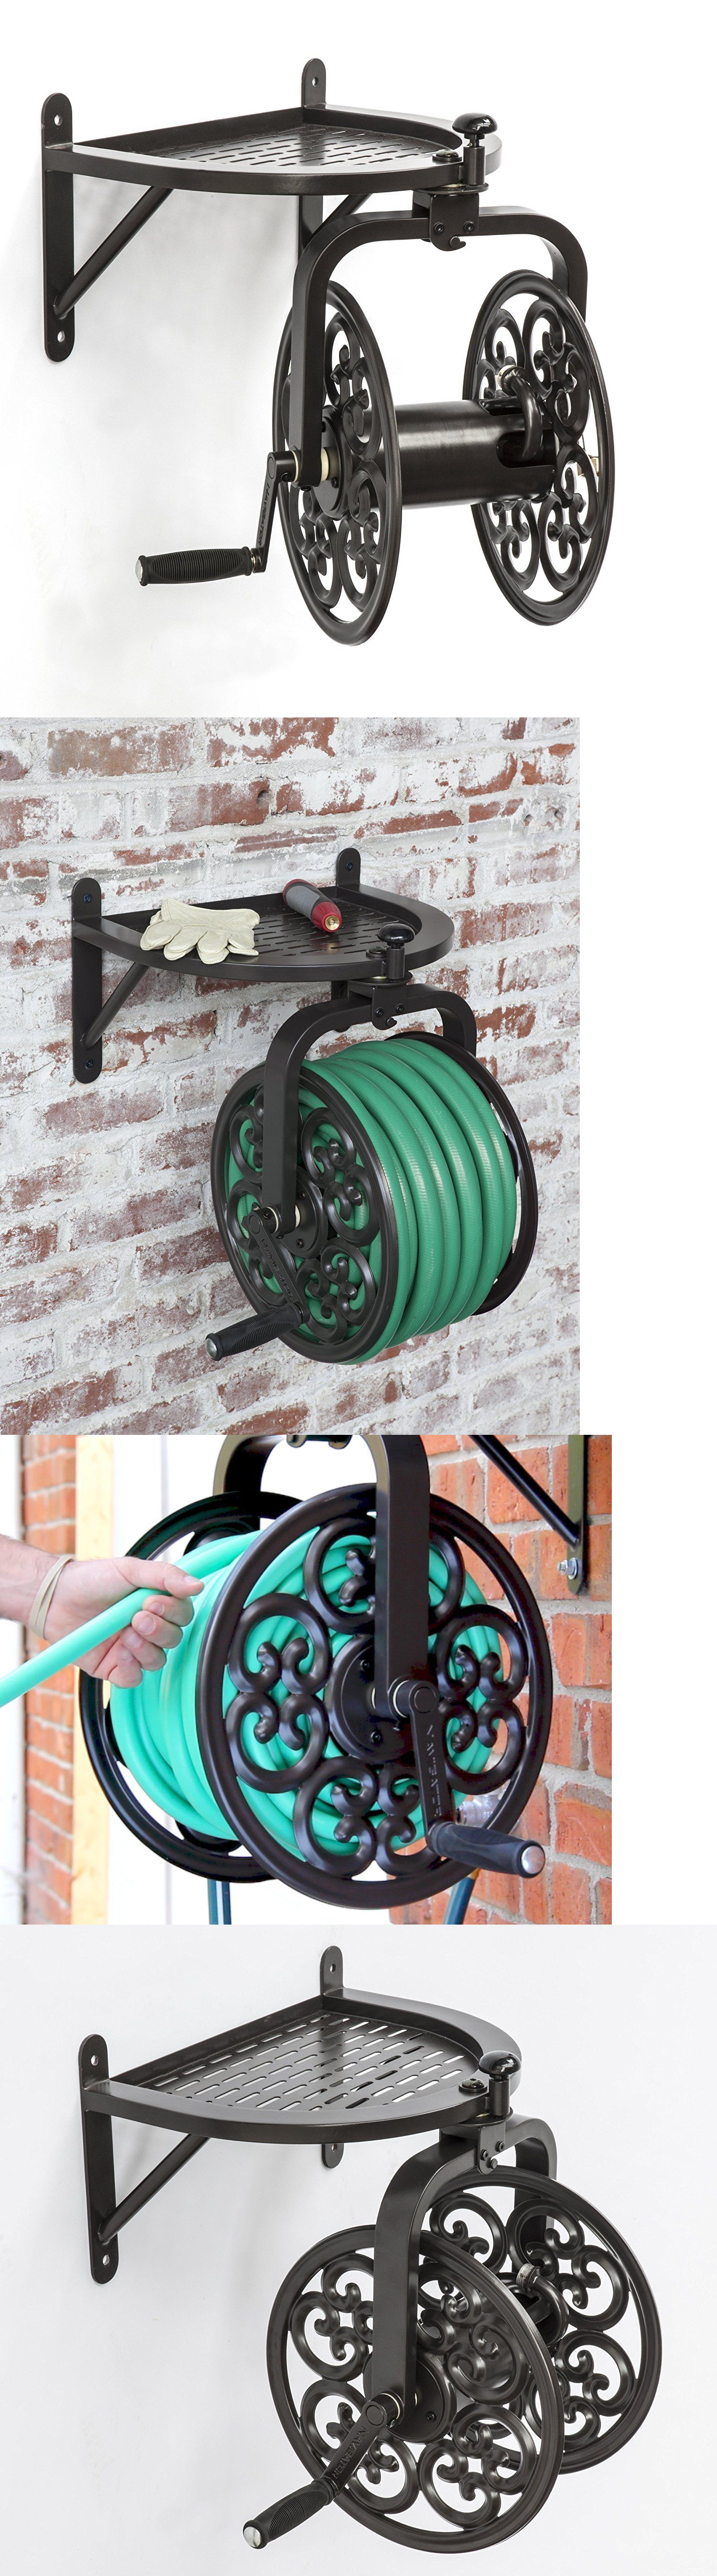 Hose reels and storage 46435 garden water hose reel bronze hose reels and storage 46435 garden water hose reel bronze decorative holder wall mount storage amipublicfo Image collections